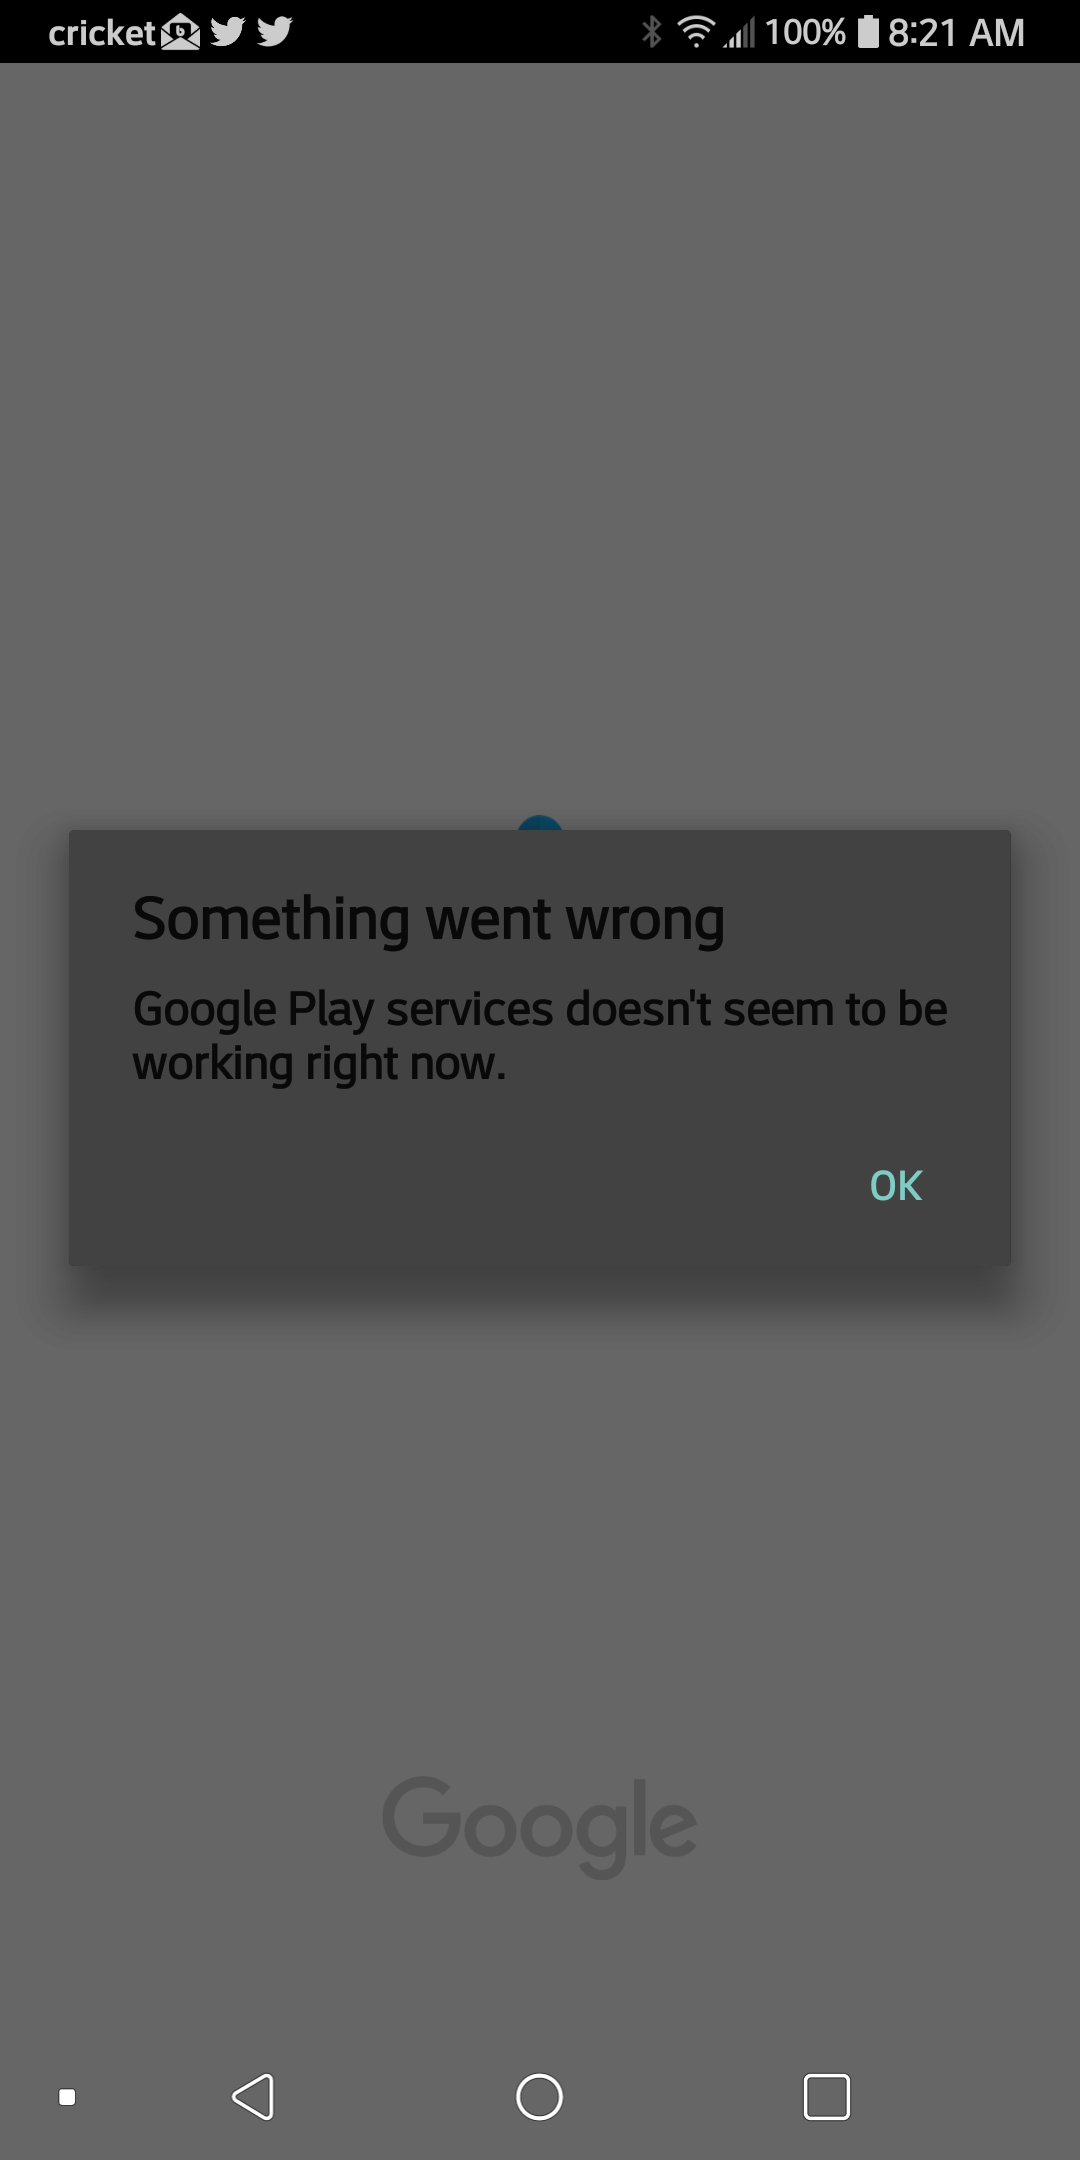 Google Play Services failed msg - Android Auto Help